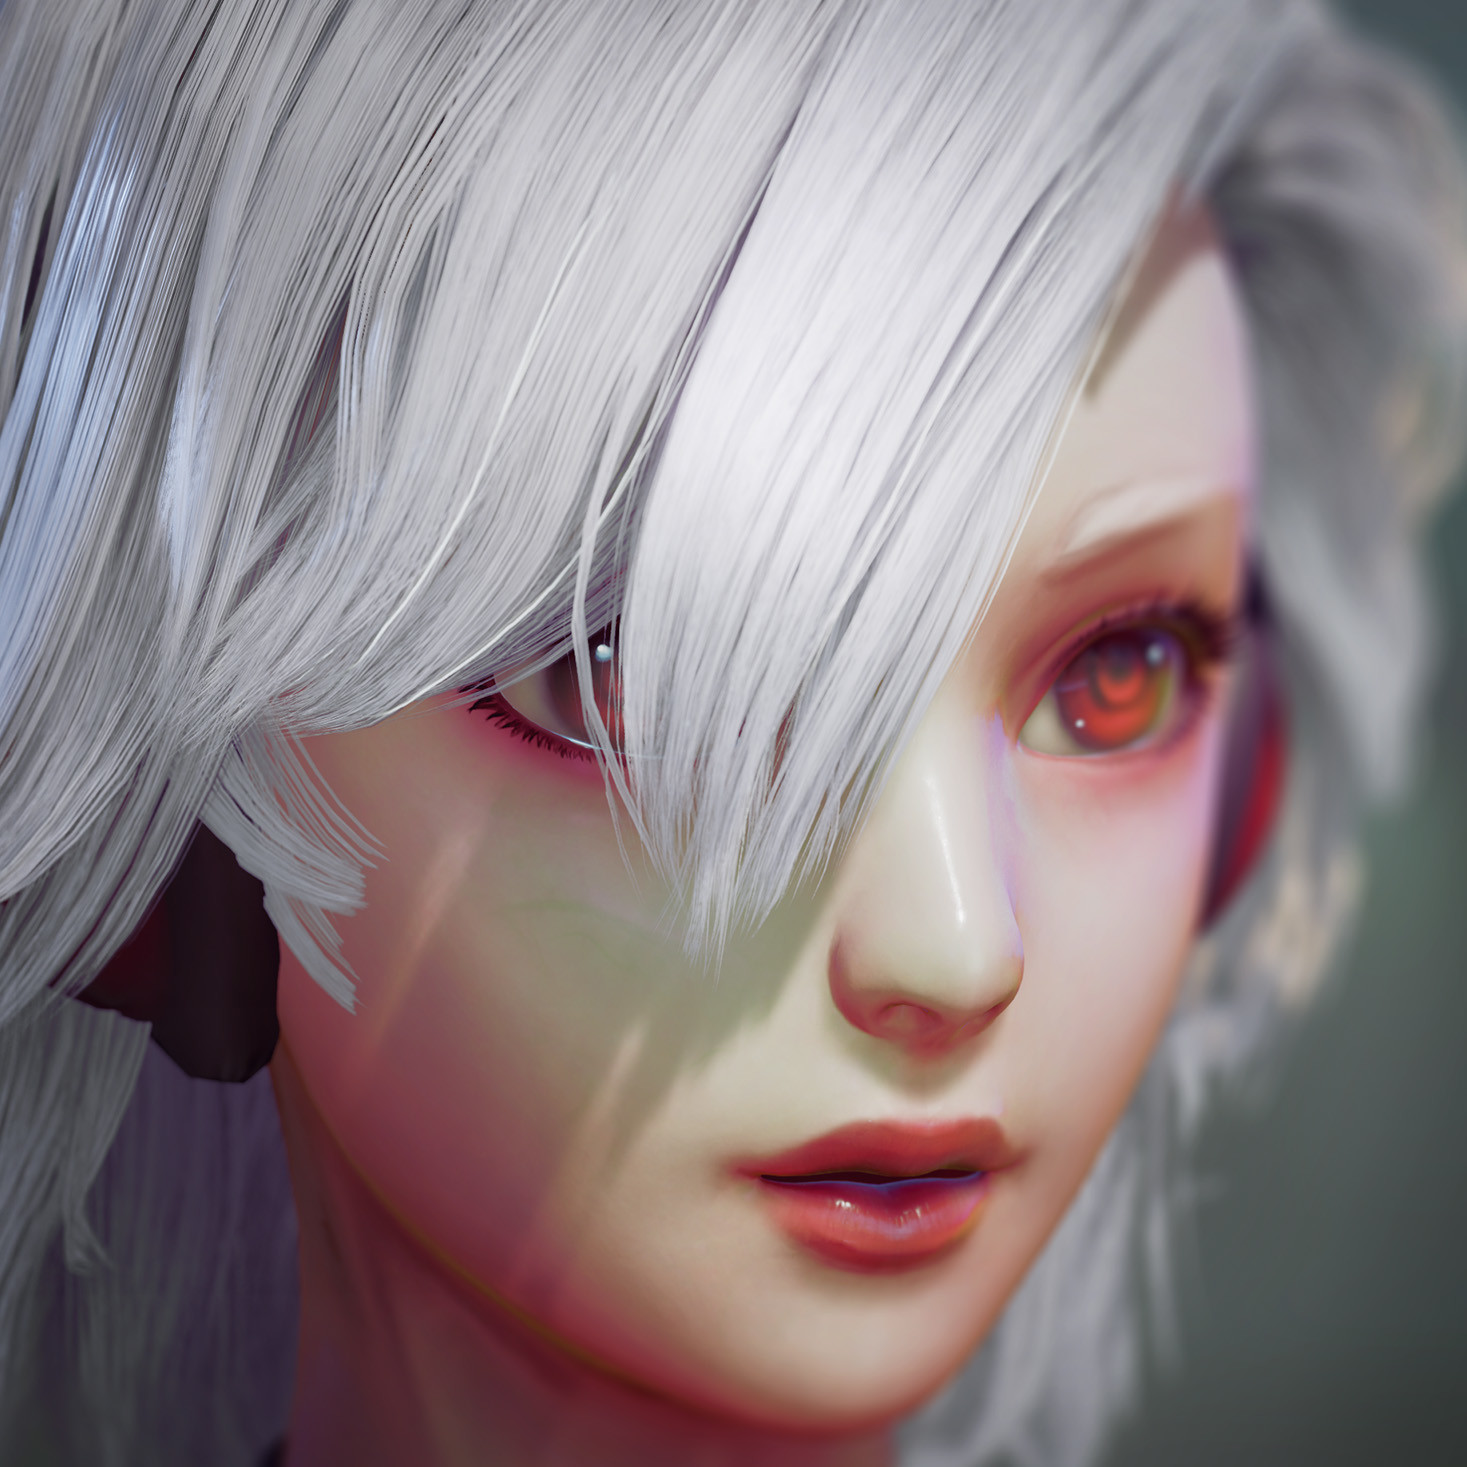 Exparia - WIP - Hair model & shader